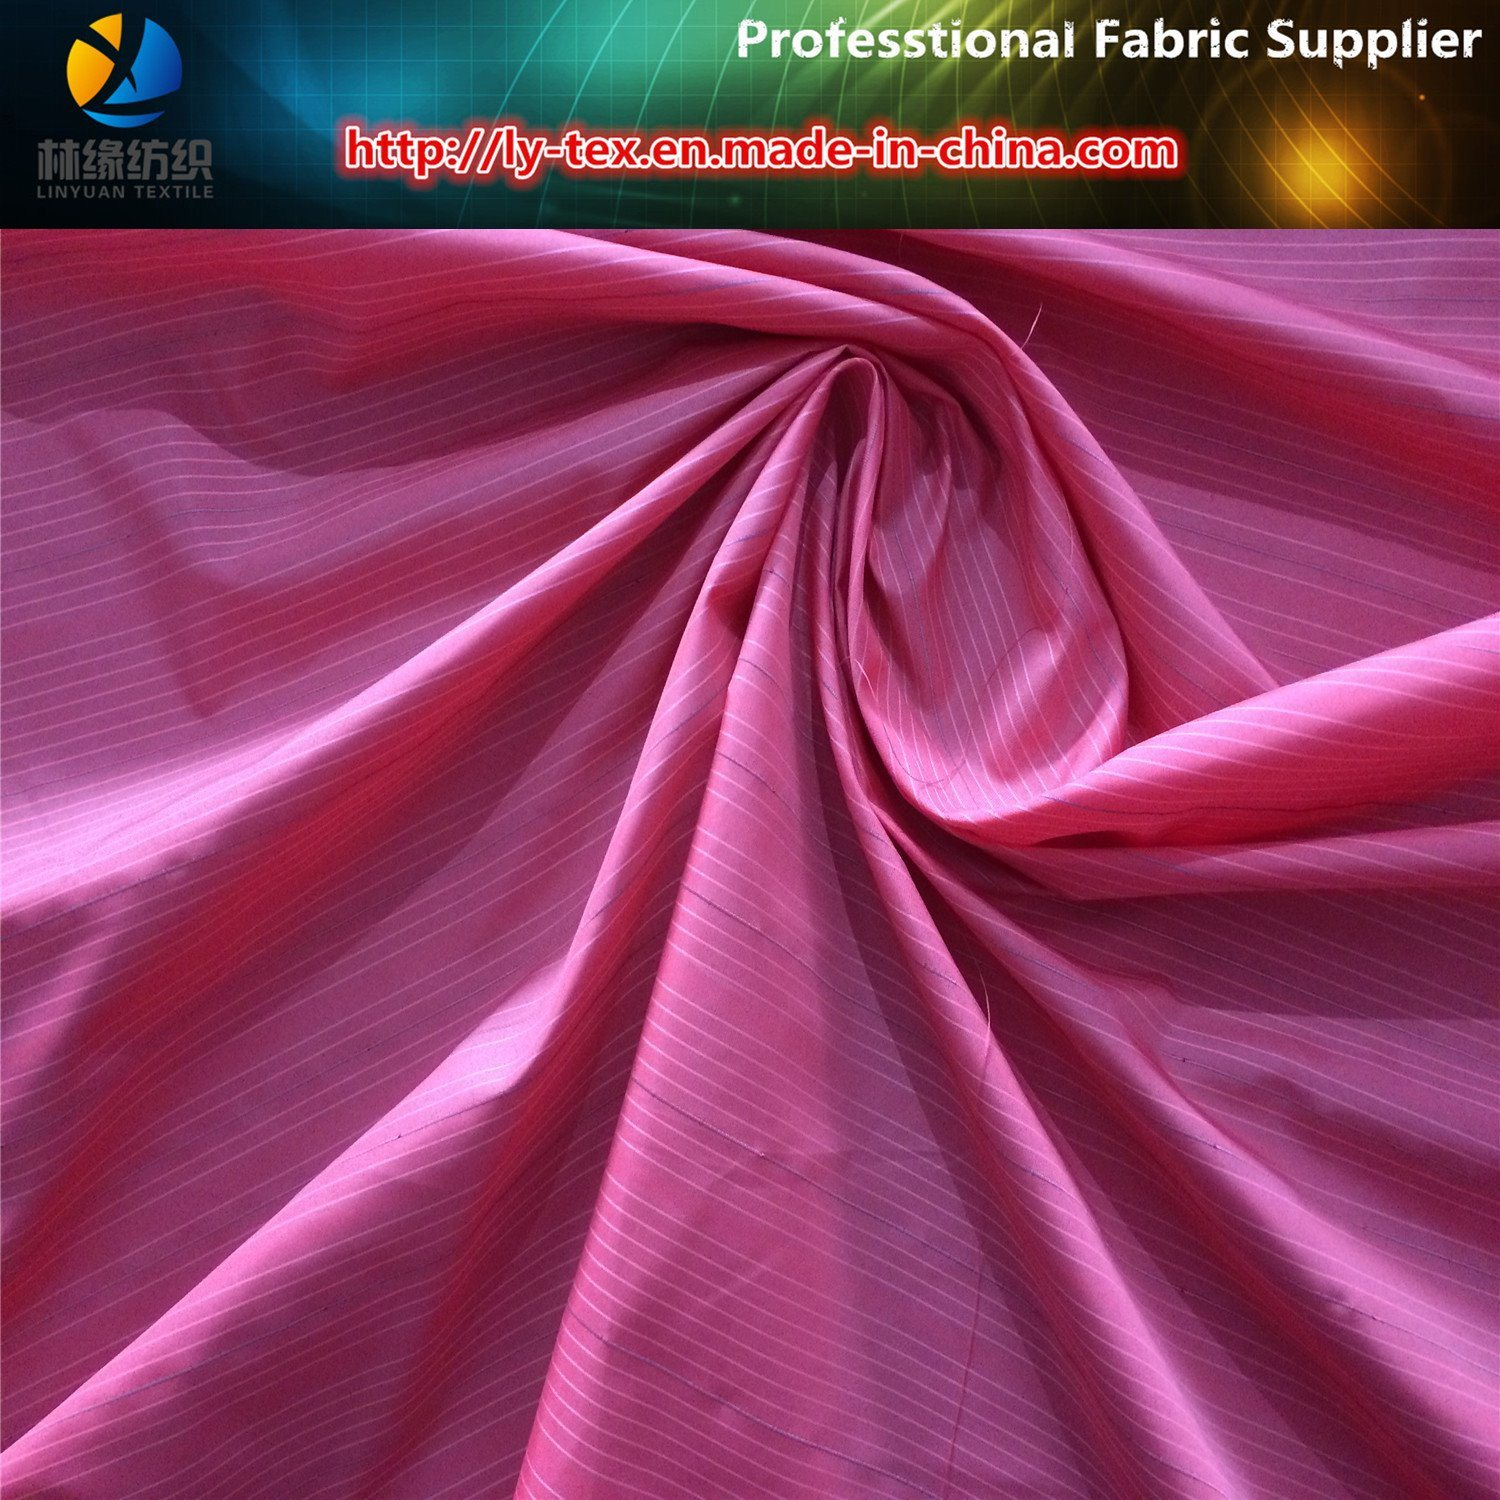 Polyester Yarn Dyed Reflective Ripstop Fabric for Safety Vest (YD1010) pictures & photos